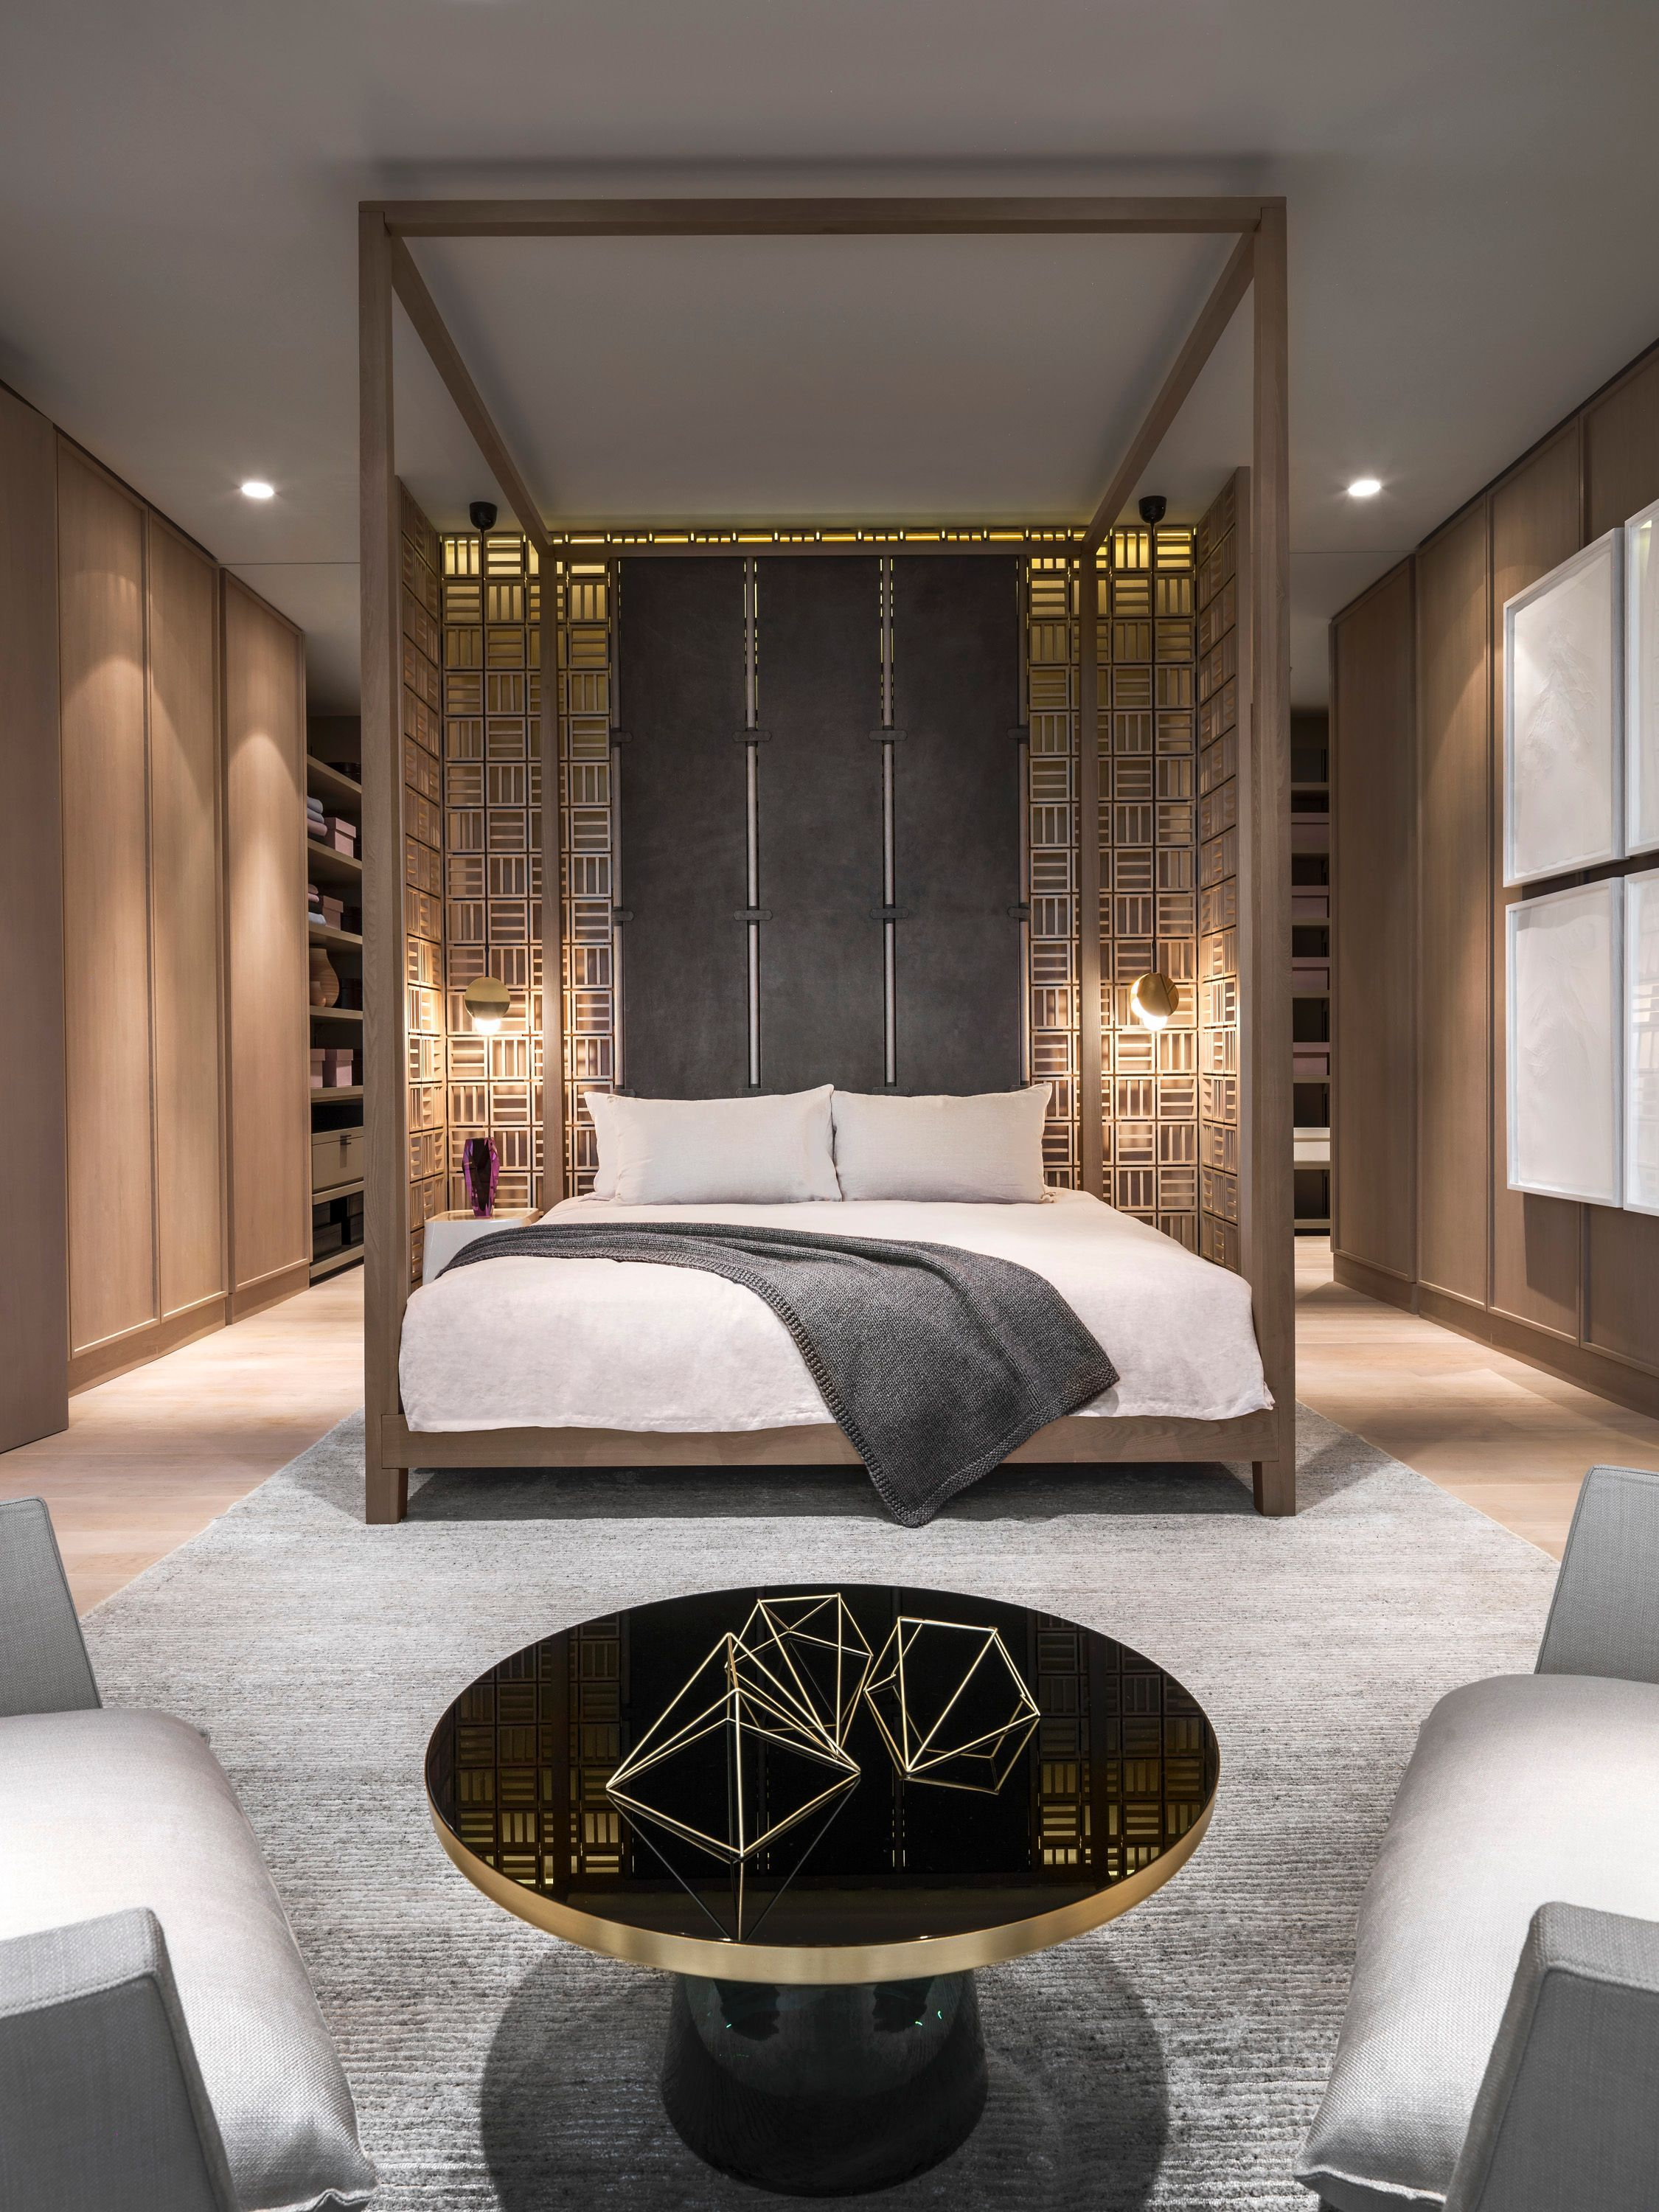 Yabu pushelberg amazing master bedroom best interior for Amazing bedroom designs